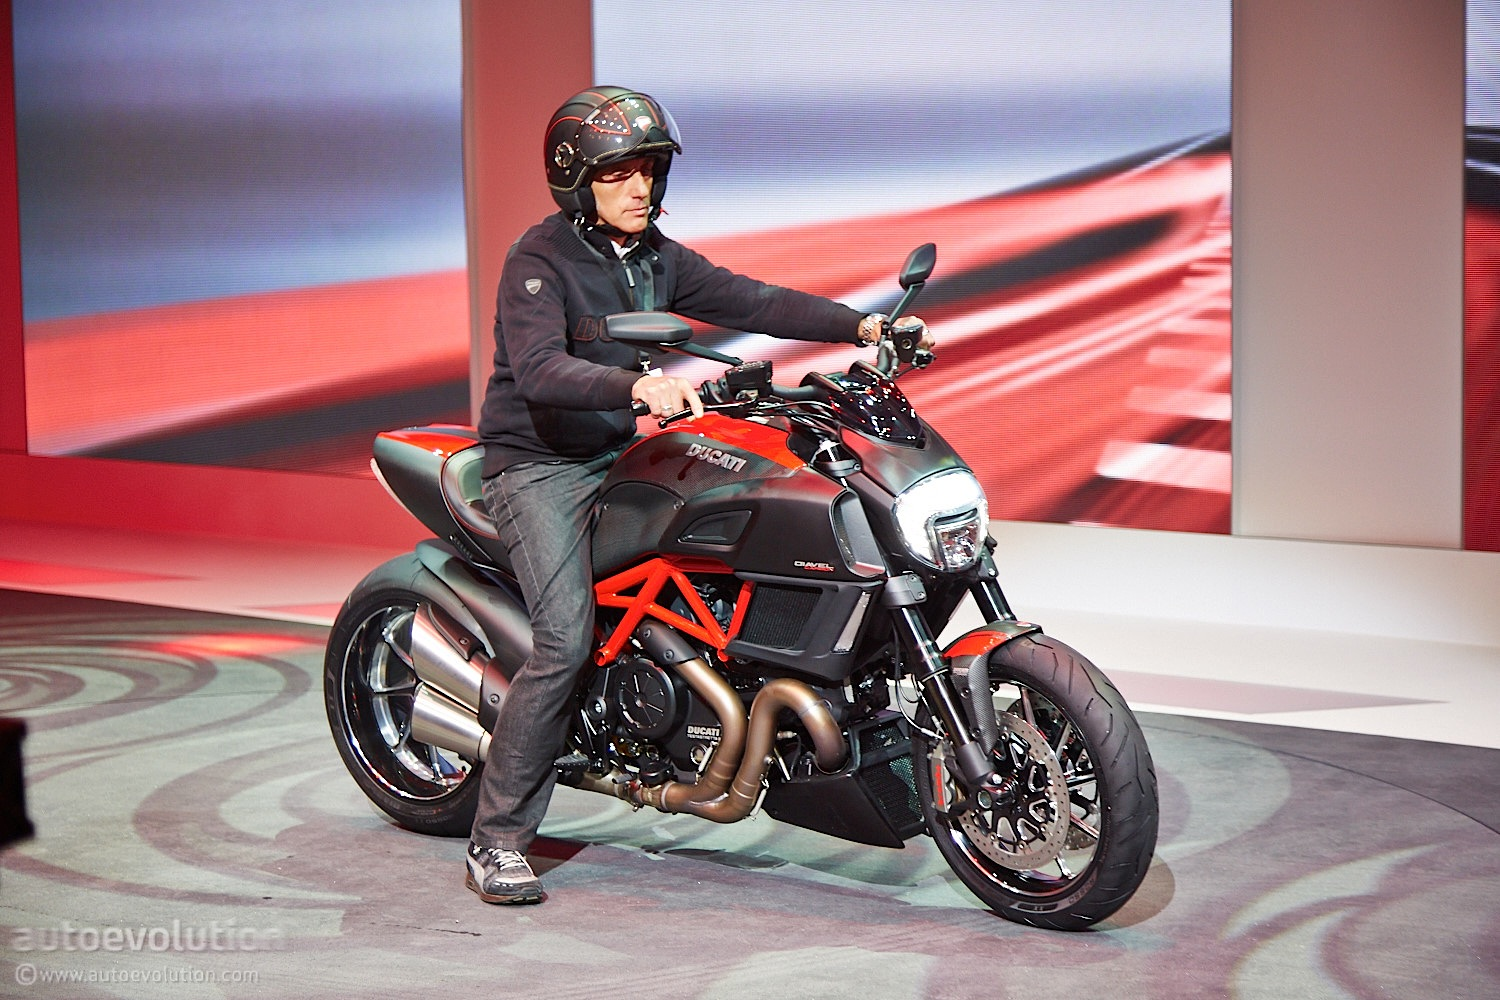 2015 Ducati Diavel Live Pictures and Tech Specs ...